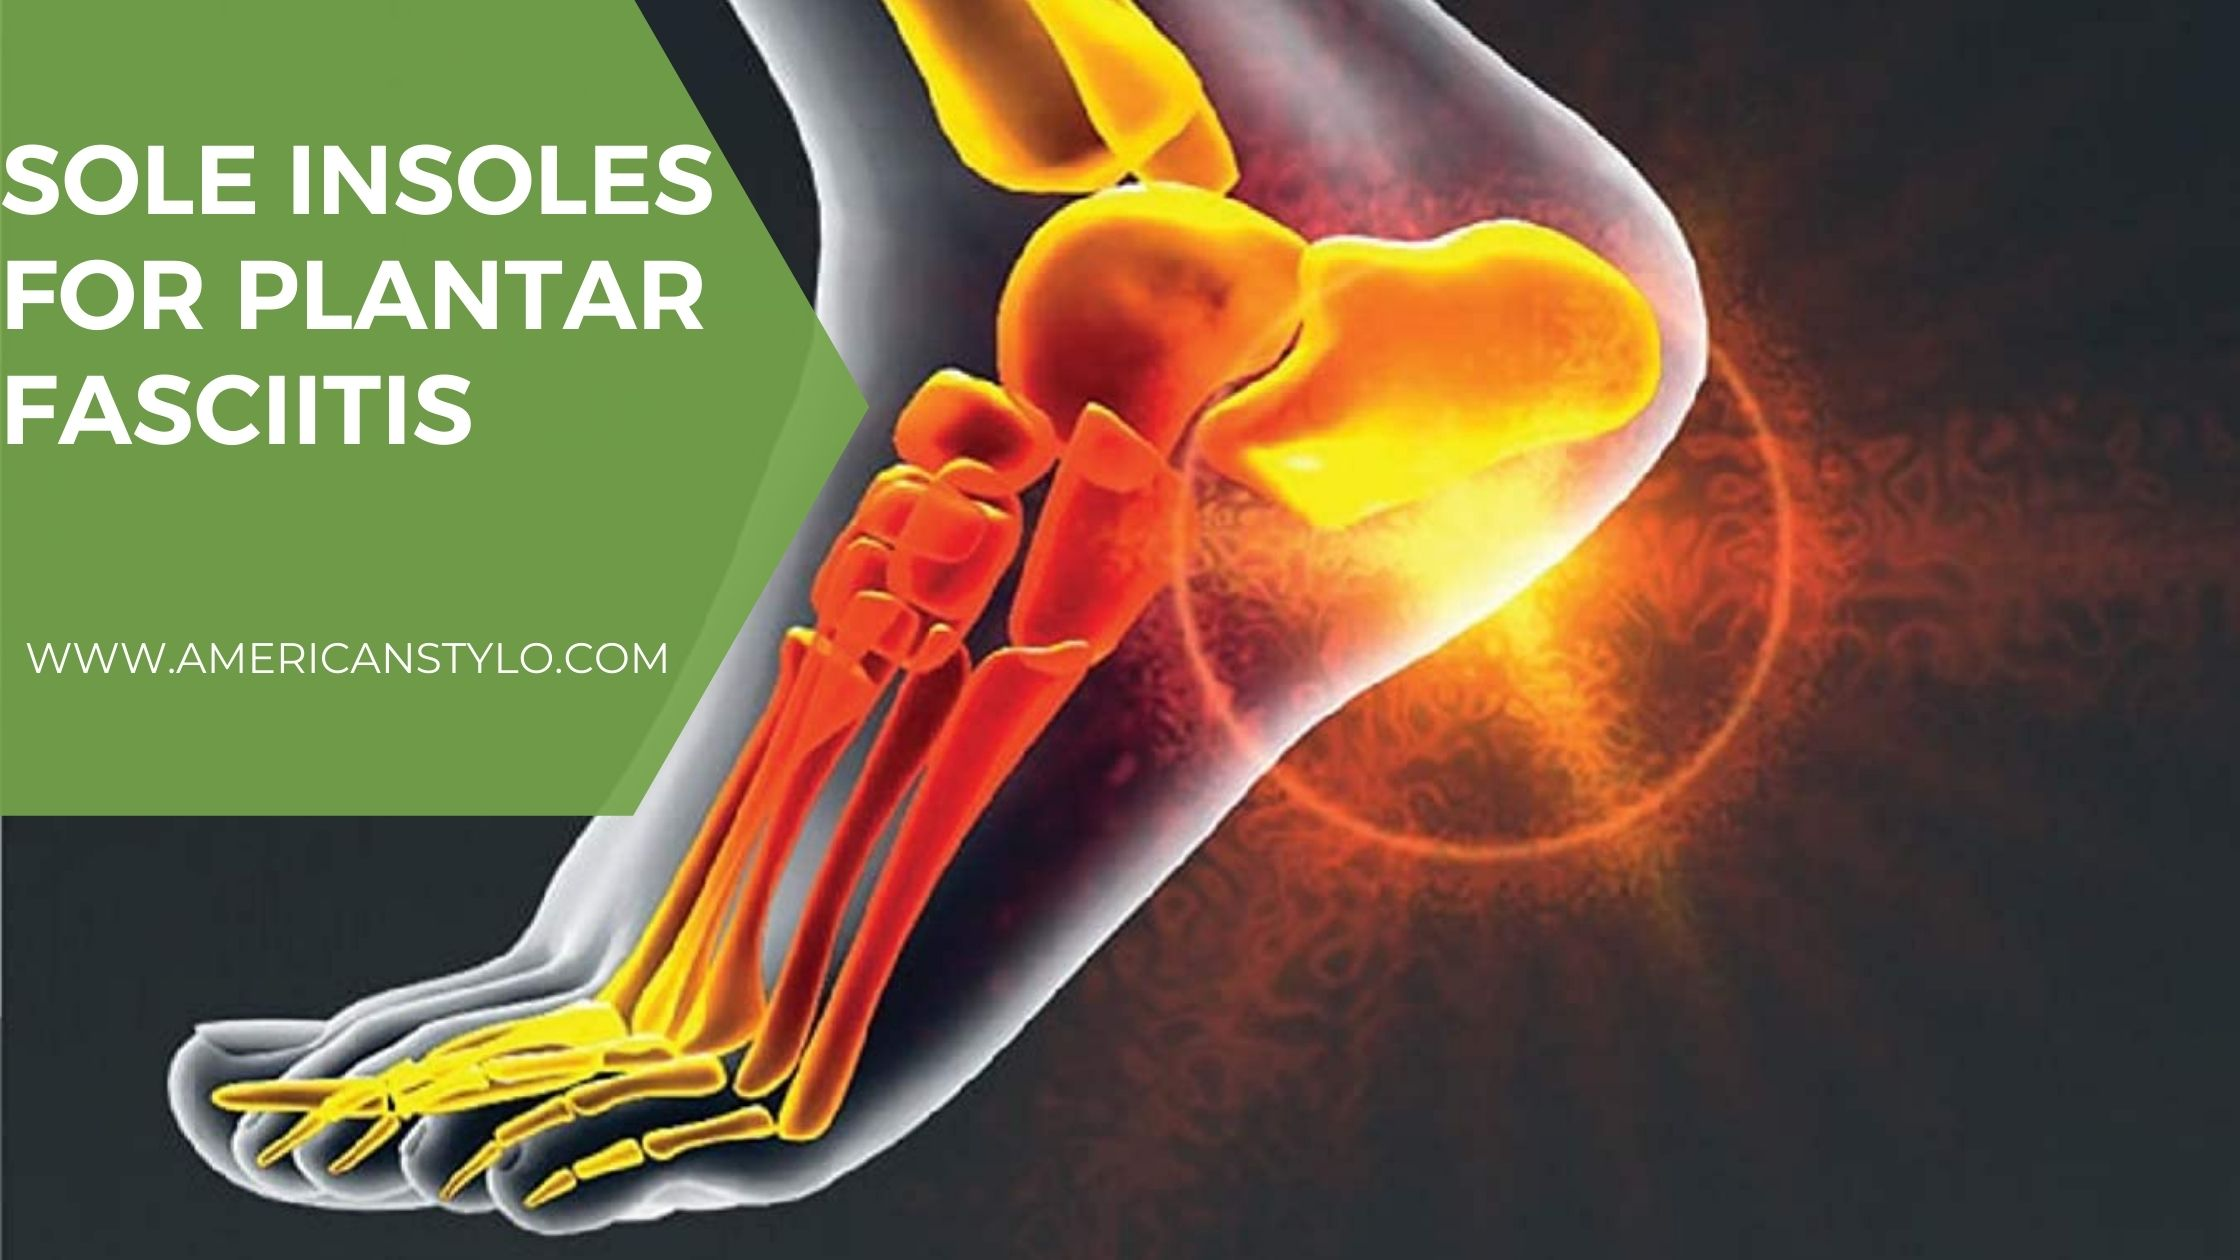 Sole Insoles For Plantar Fasciitis